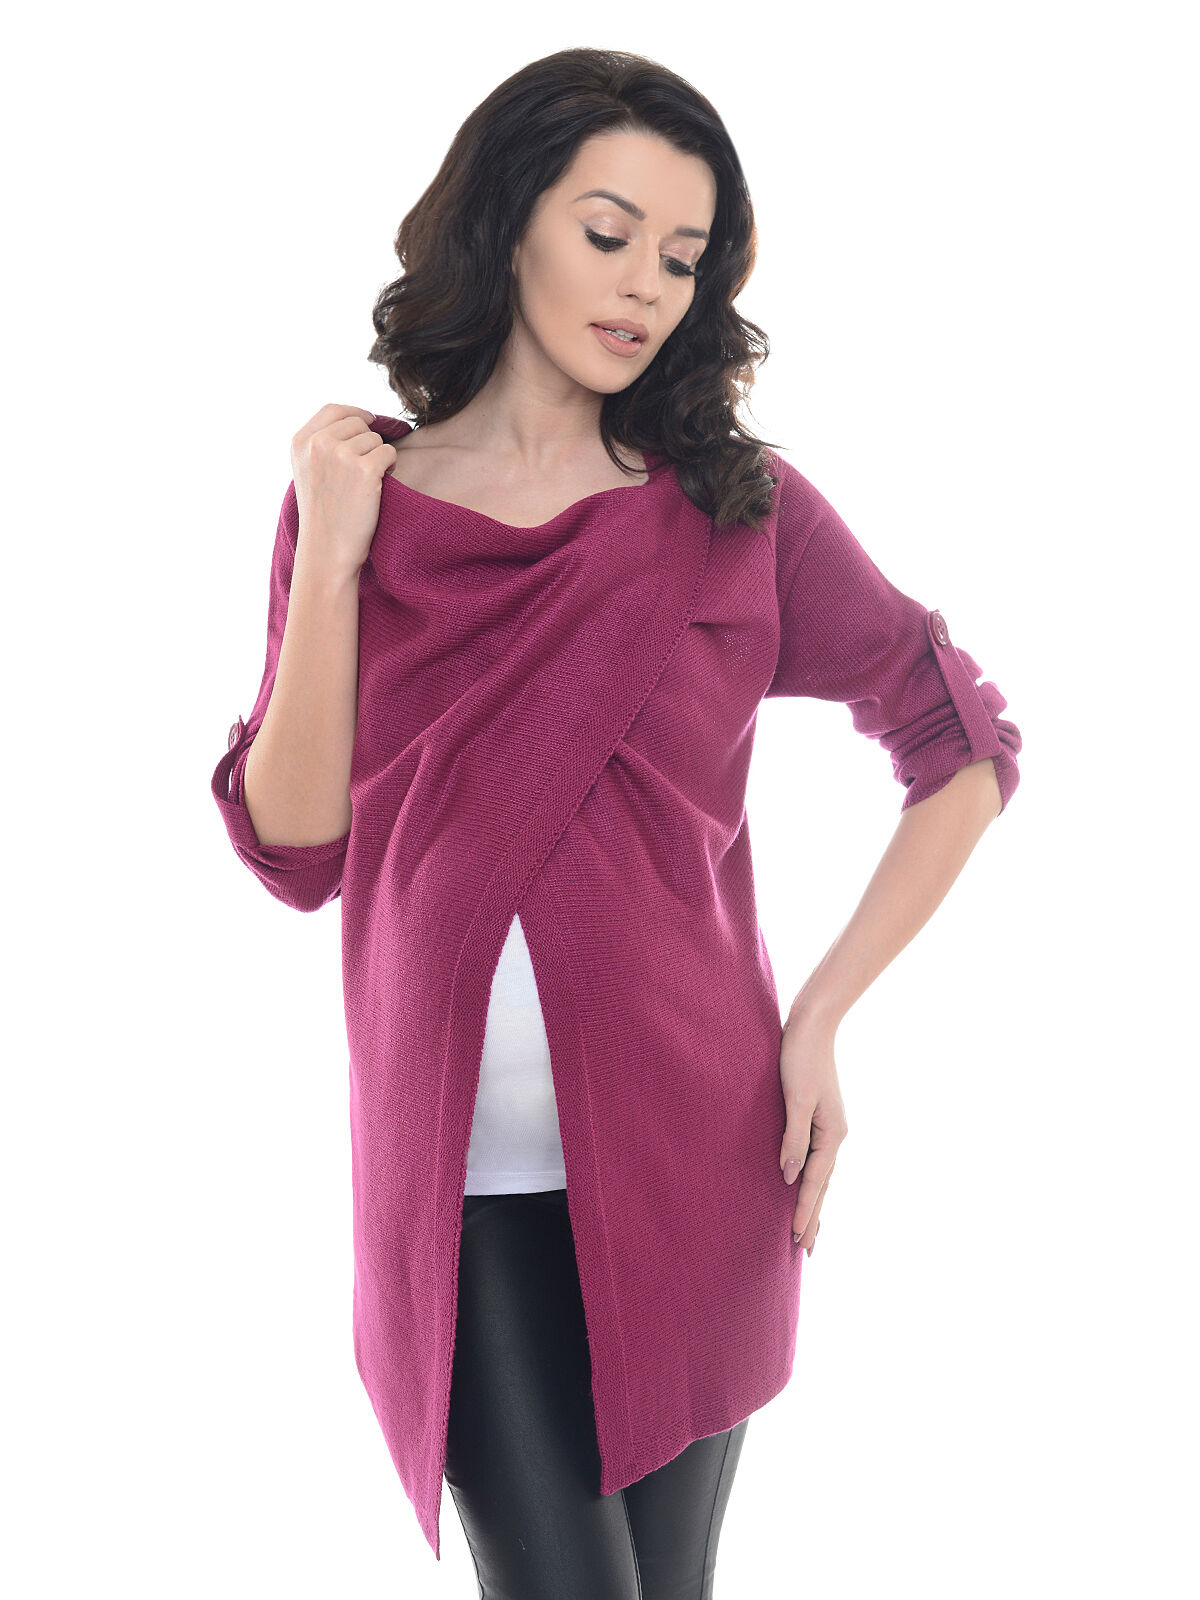 914db361b0 Purpless Maternity 2 in 1 Pregnancy and Nursing Sweater Cardigan Coat B9005  Dark Pink 12 14 for sale online